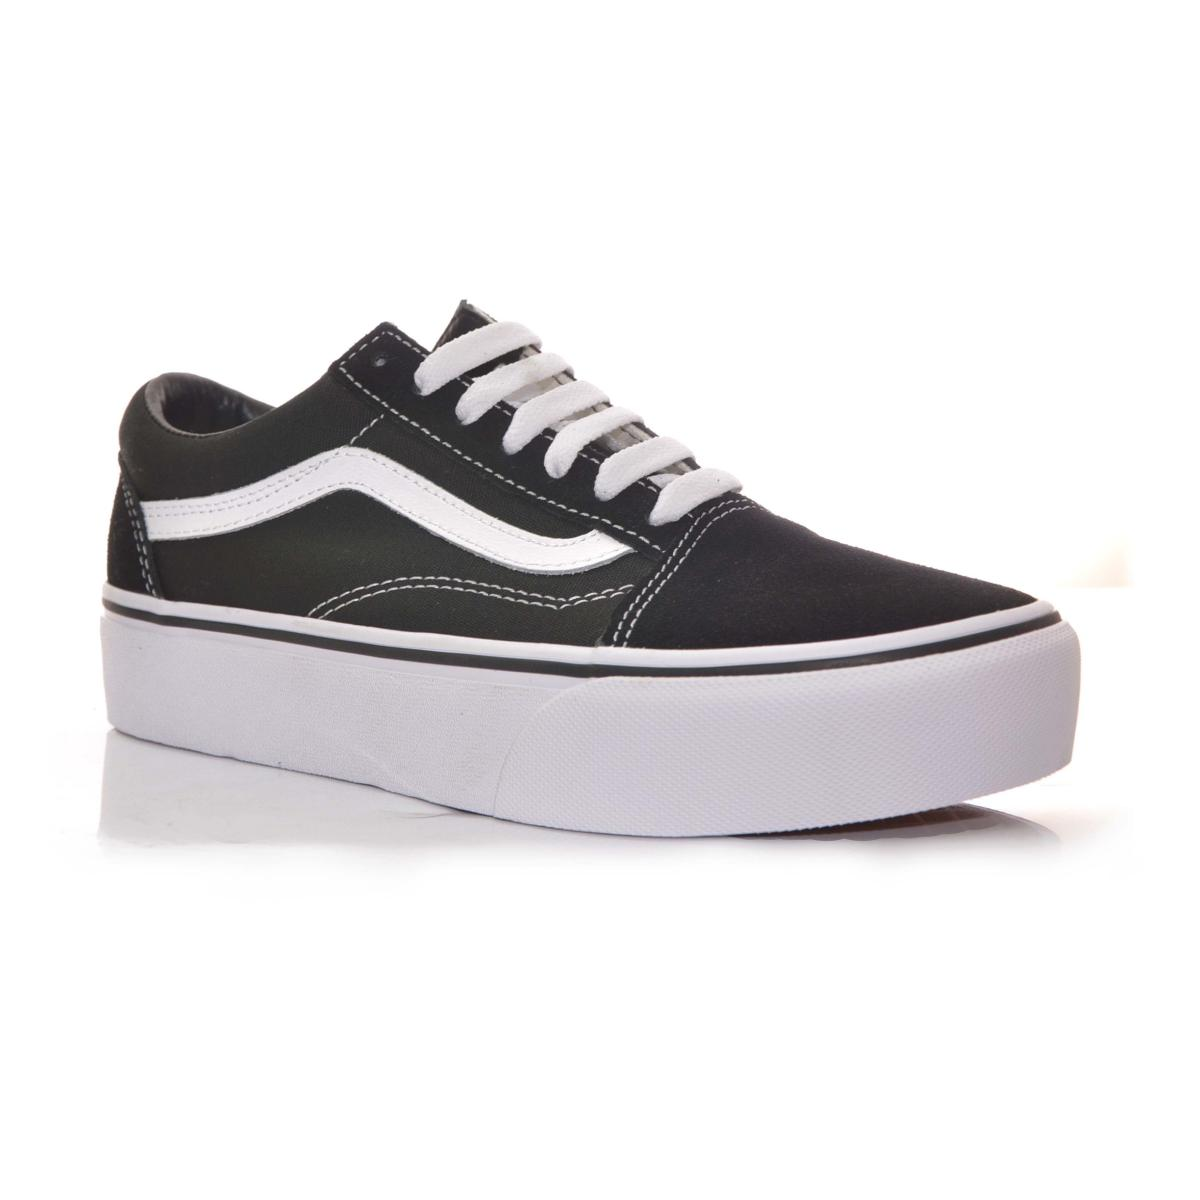 3474fa943026c VANS MUJER VANS OLD SKOOL VA3B3UY28 TEXTIL ZAPATILLAS DOBLE SUELA-in  Slippers from Shoes on Aliexpress.com